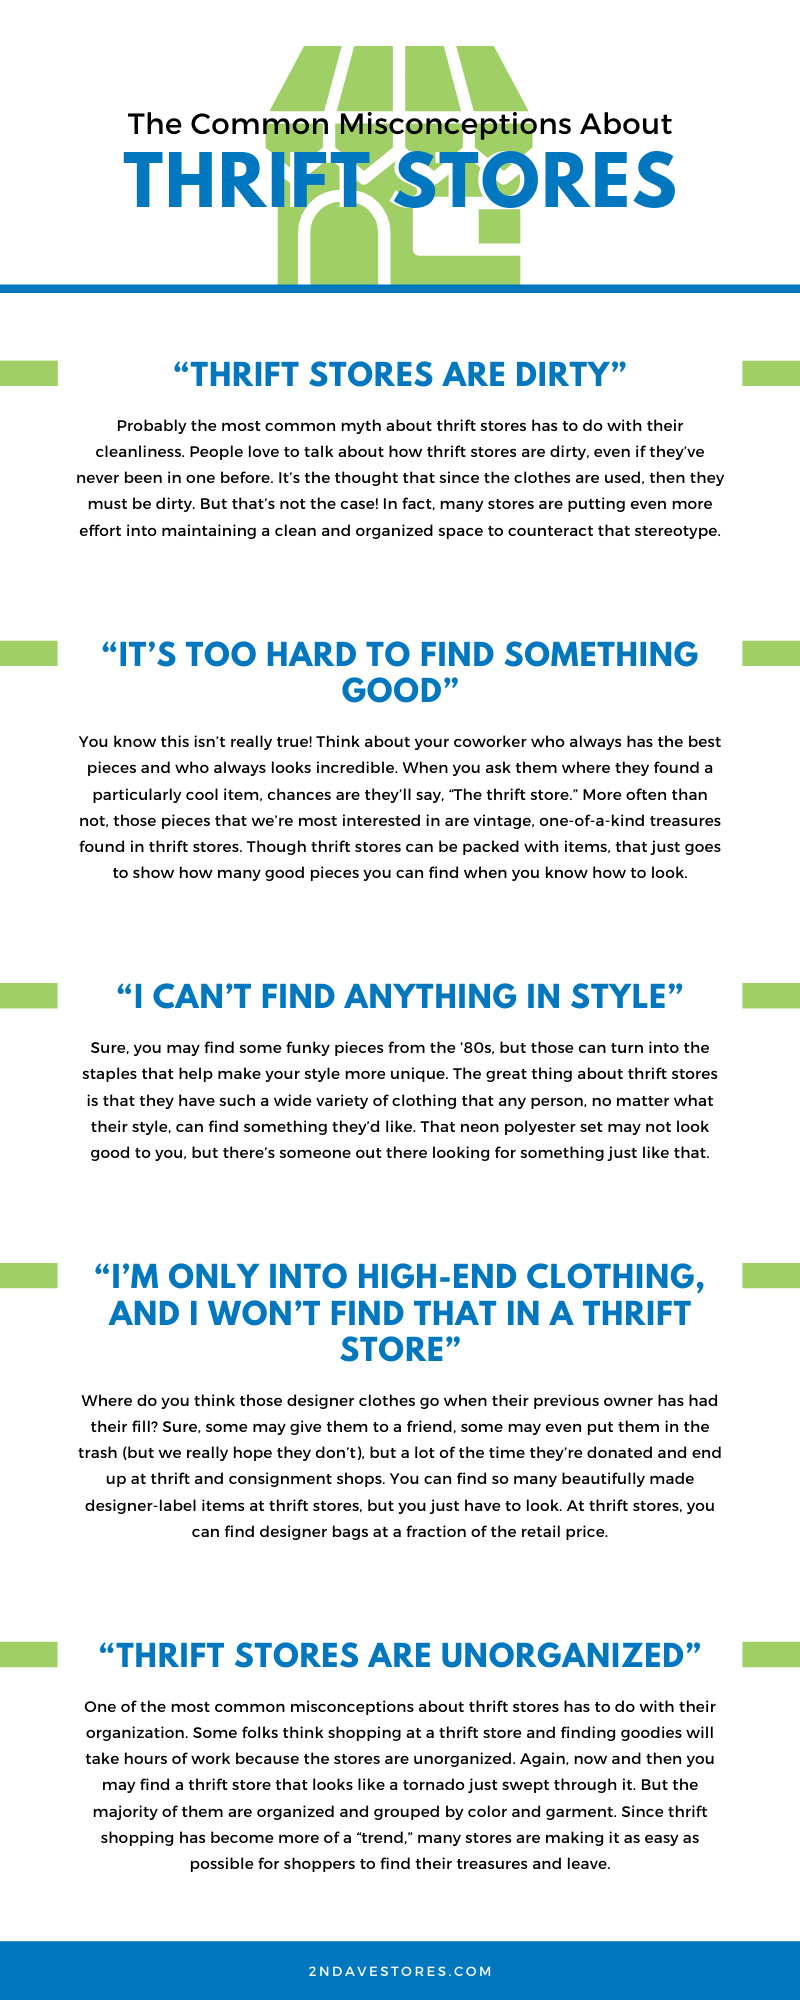 Misconceptions About Thrift Stores